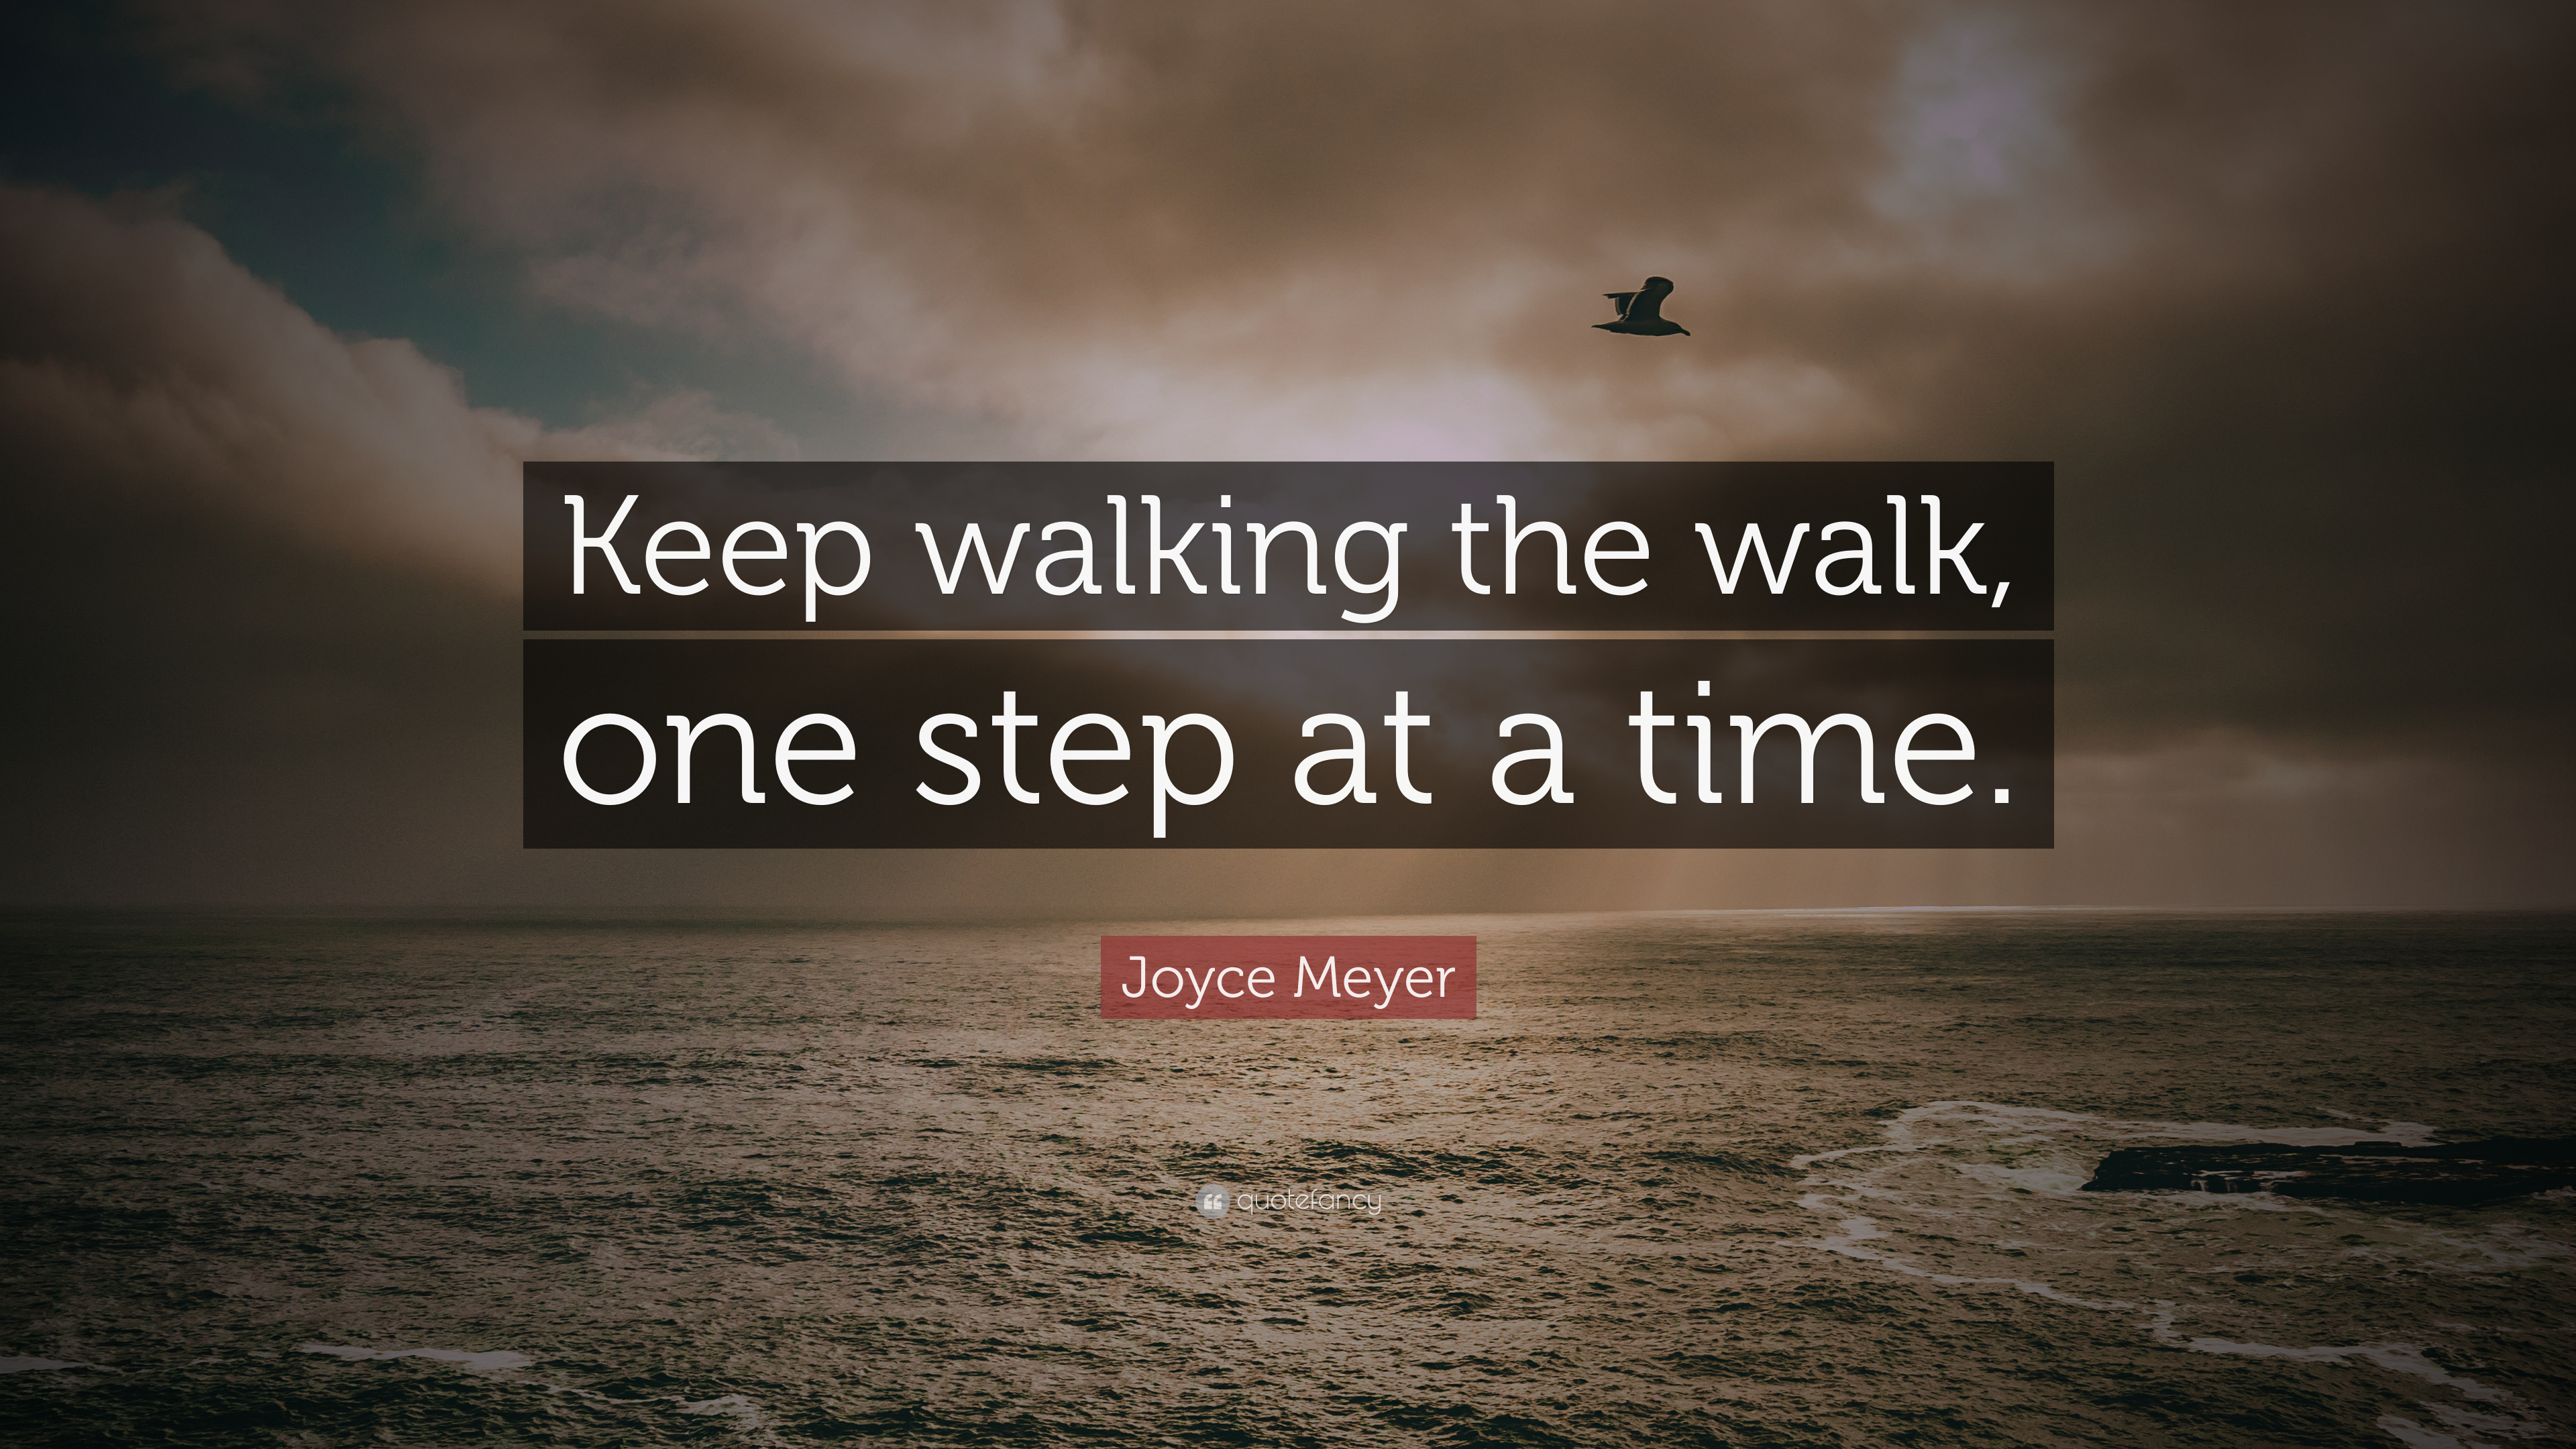 joyce meyer quote keep walking the walk one step at a. Black Bedroom Furniture Sets. Home Design Ideas